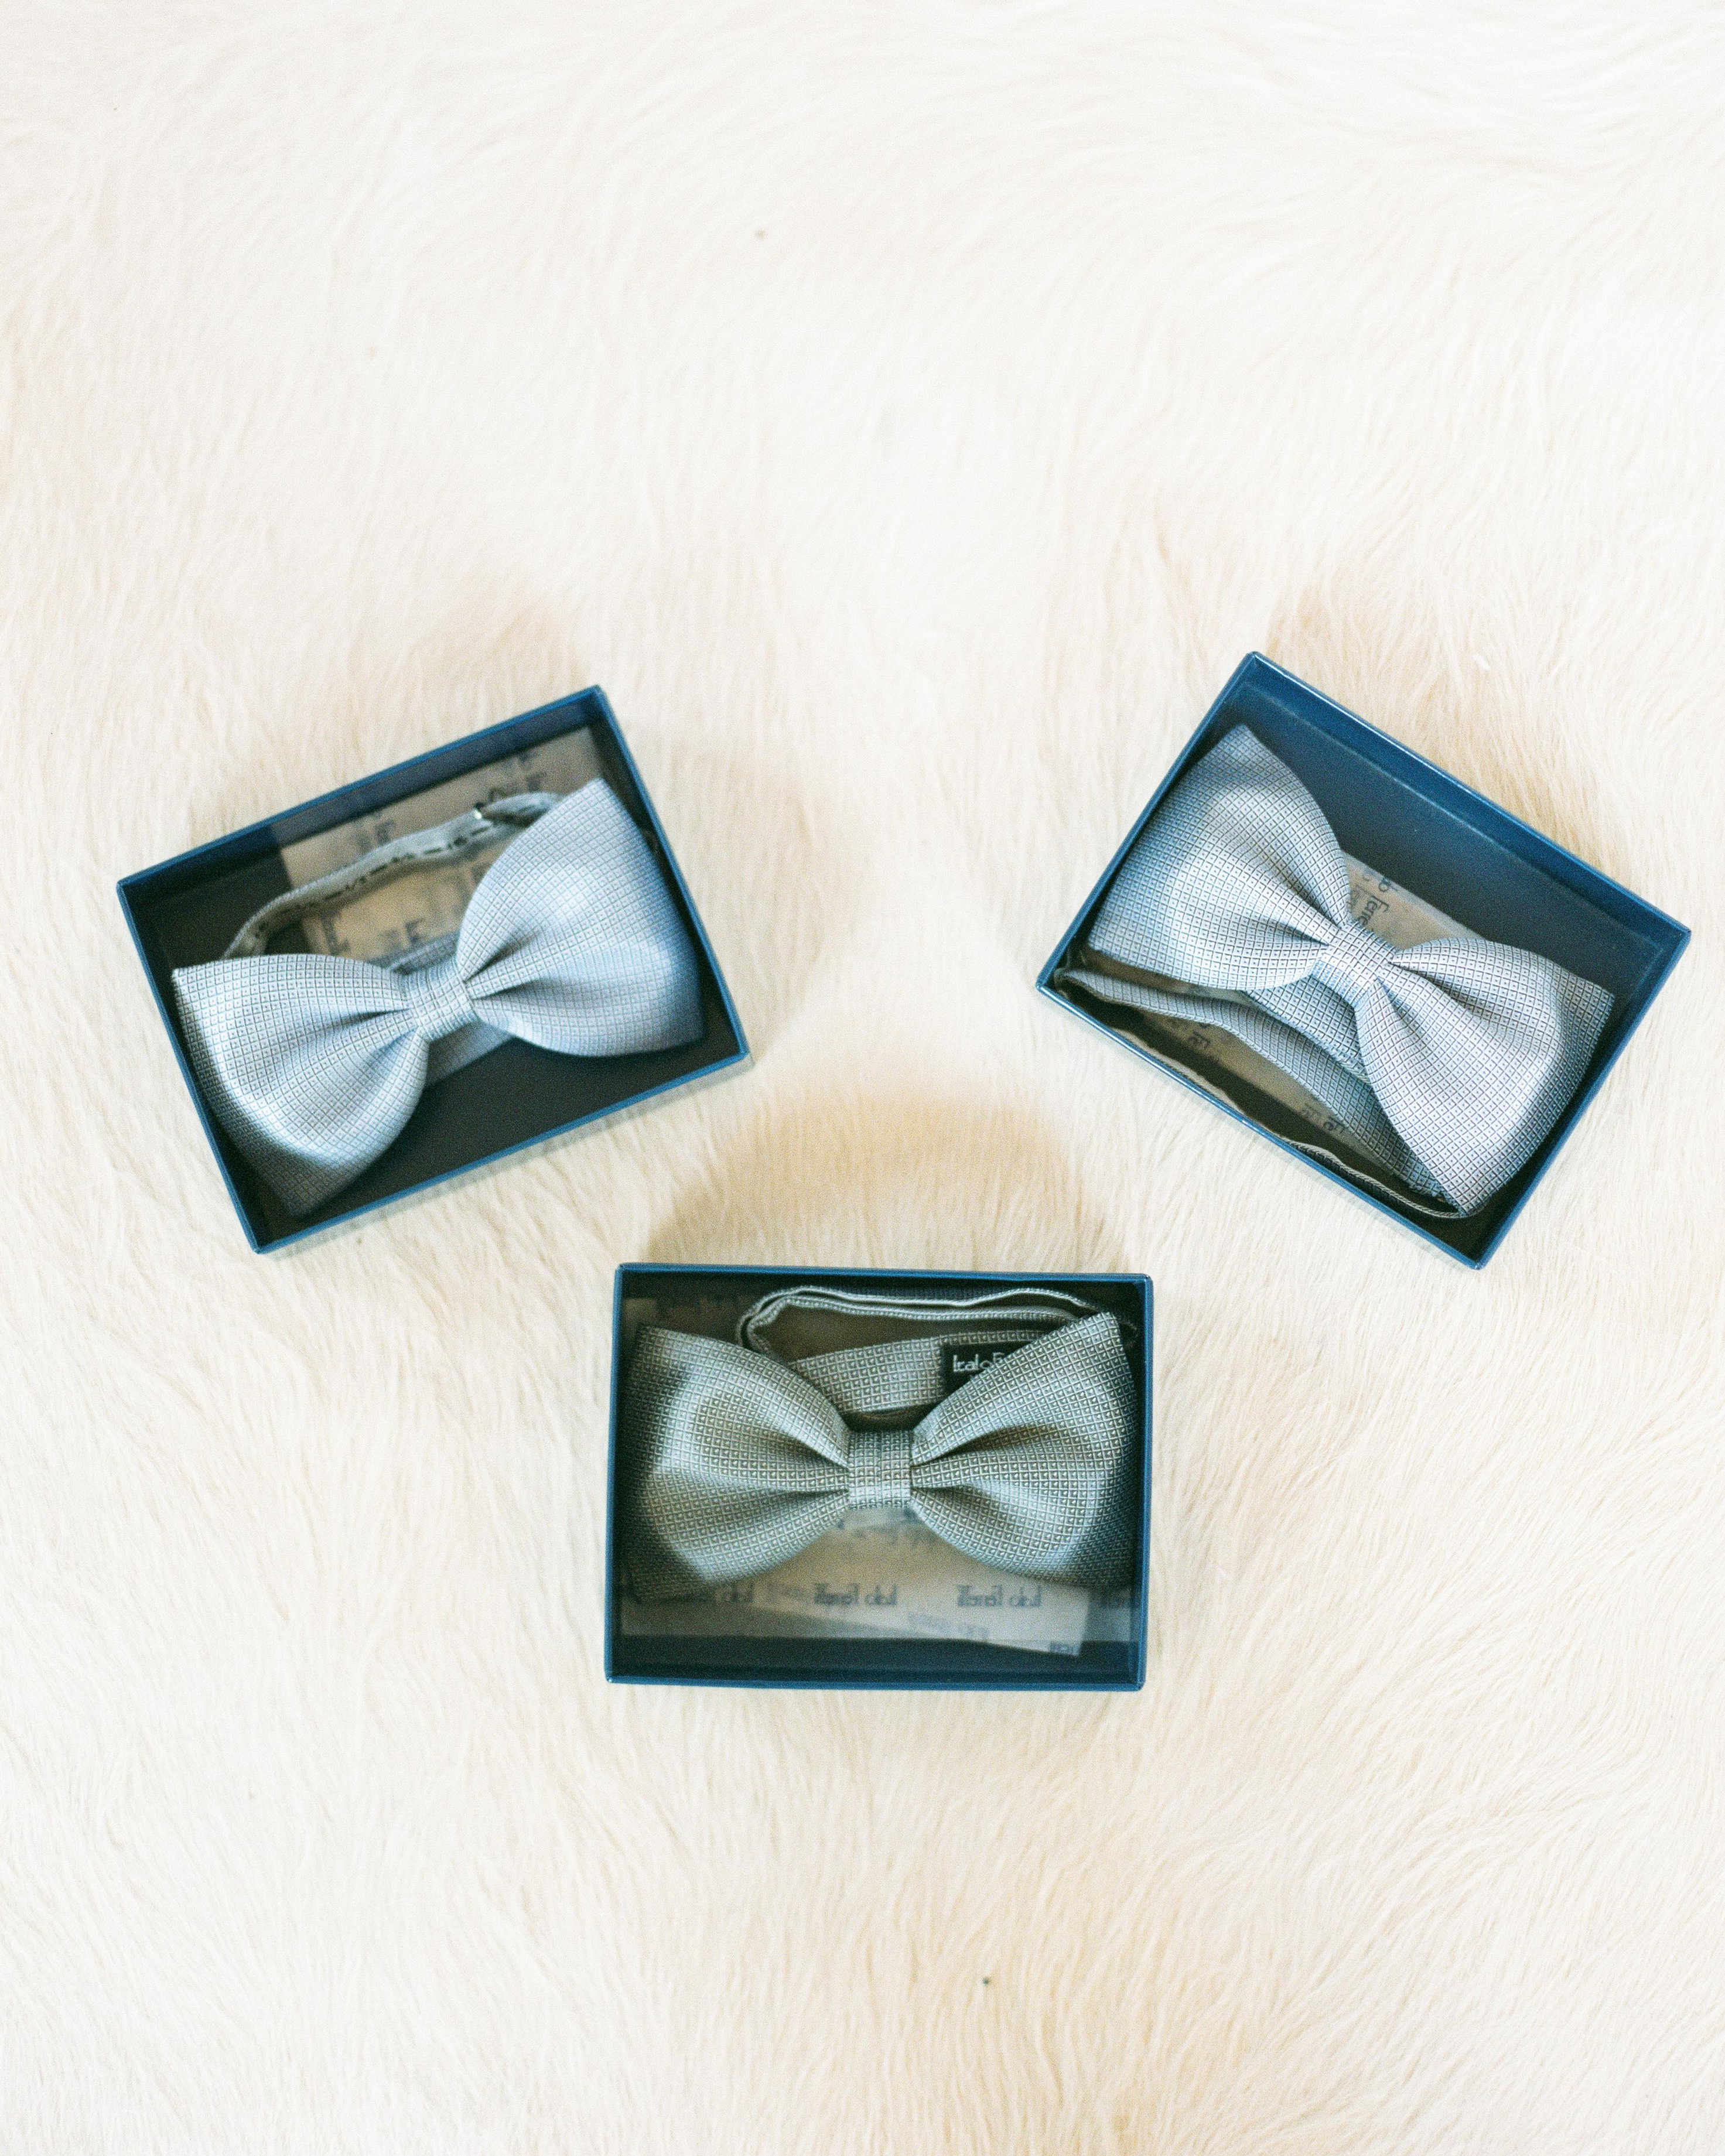 regina-jack-wedding-bowties-22-s111820-0215.jpg